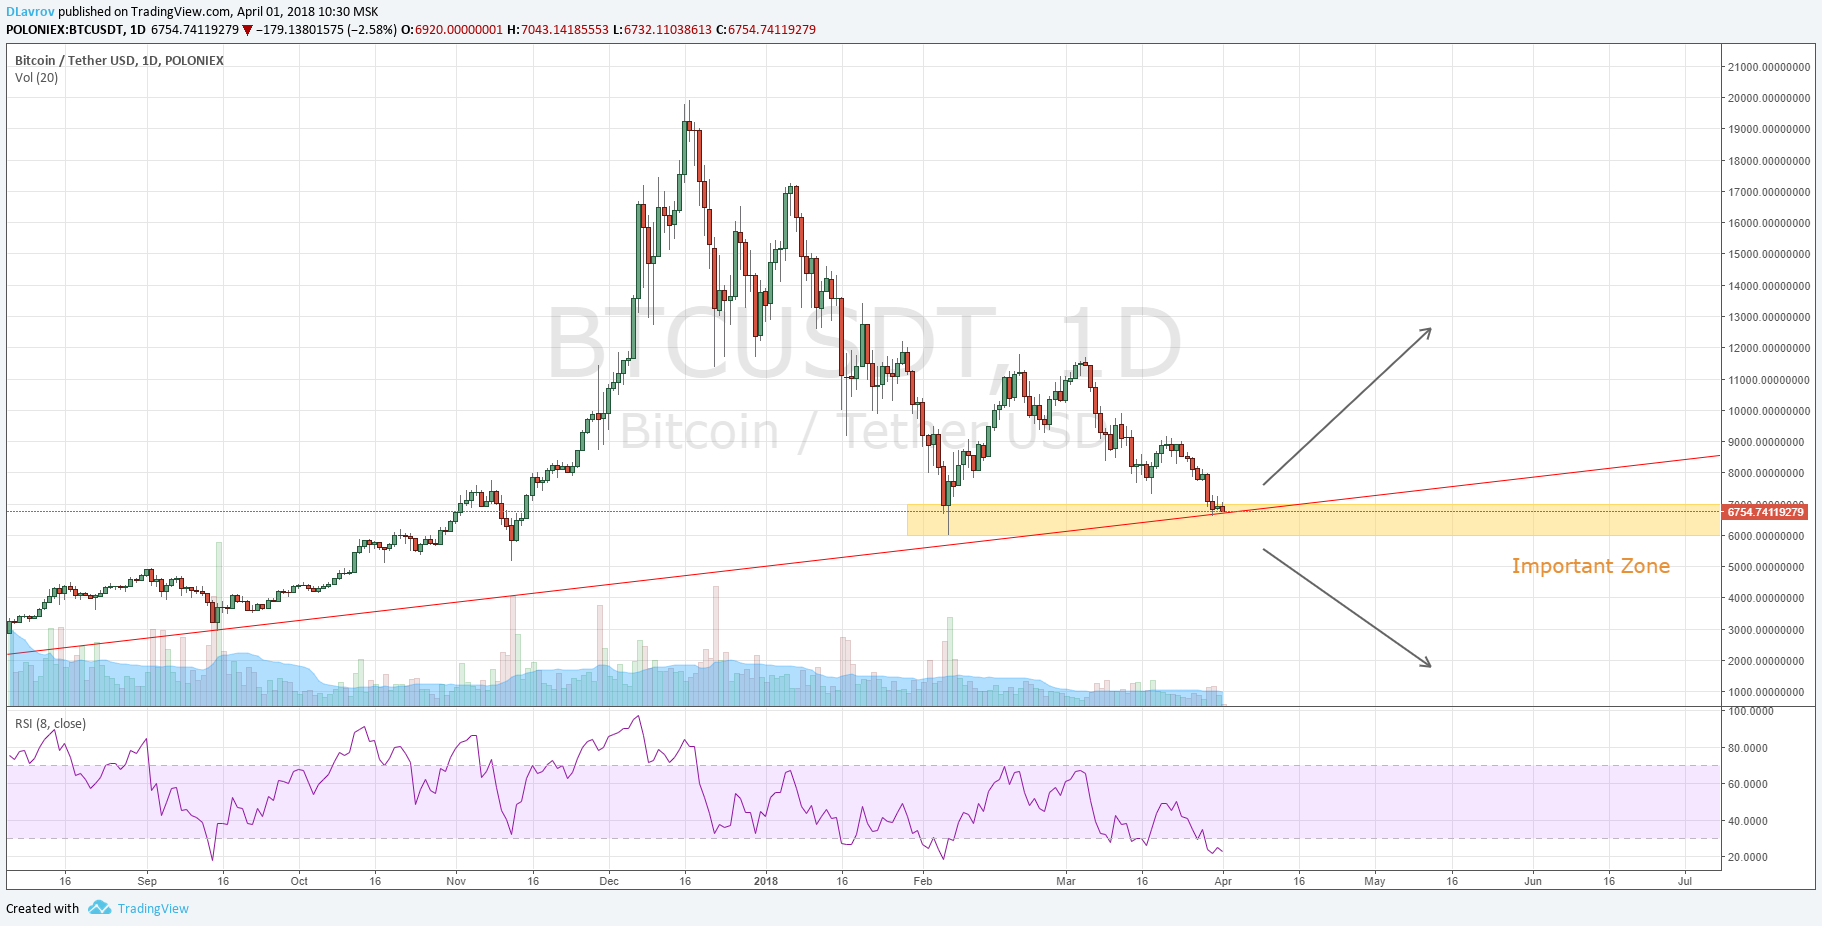 Bitcoin The Most Important Zone for Bulls